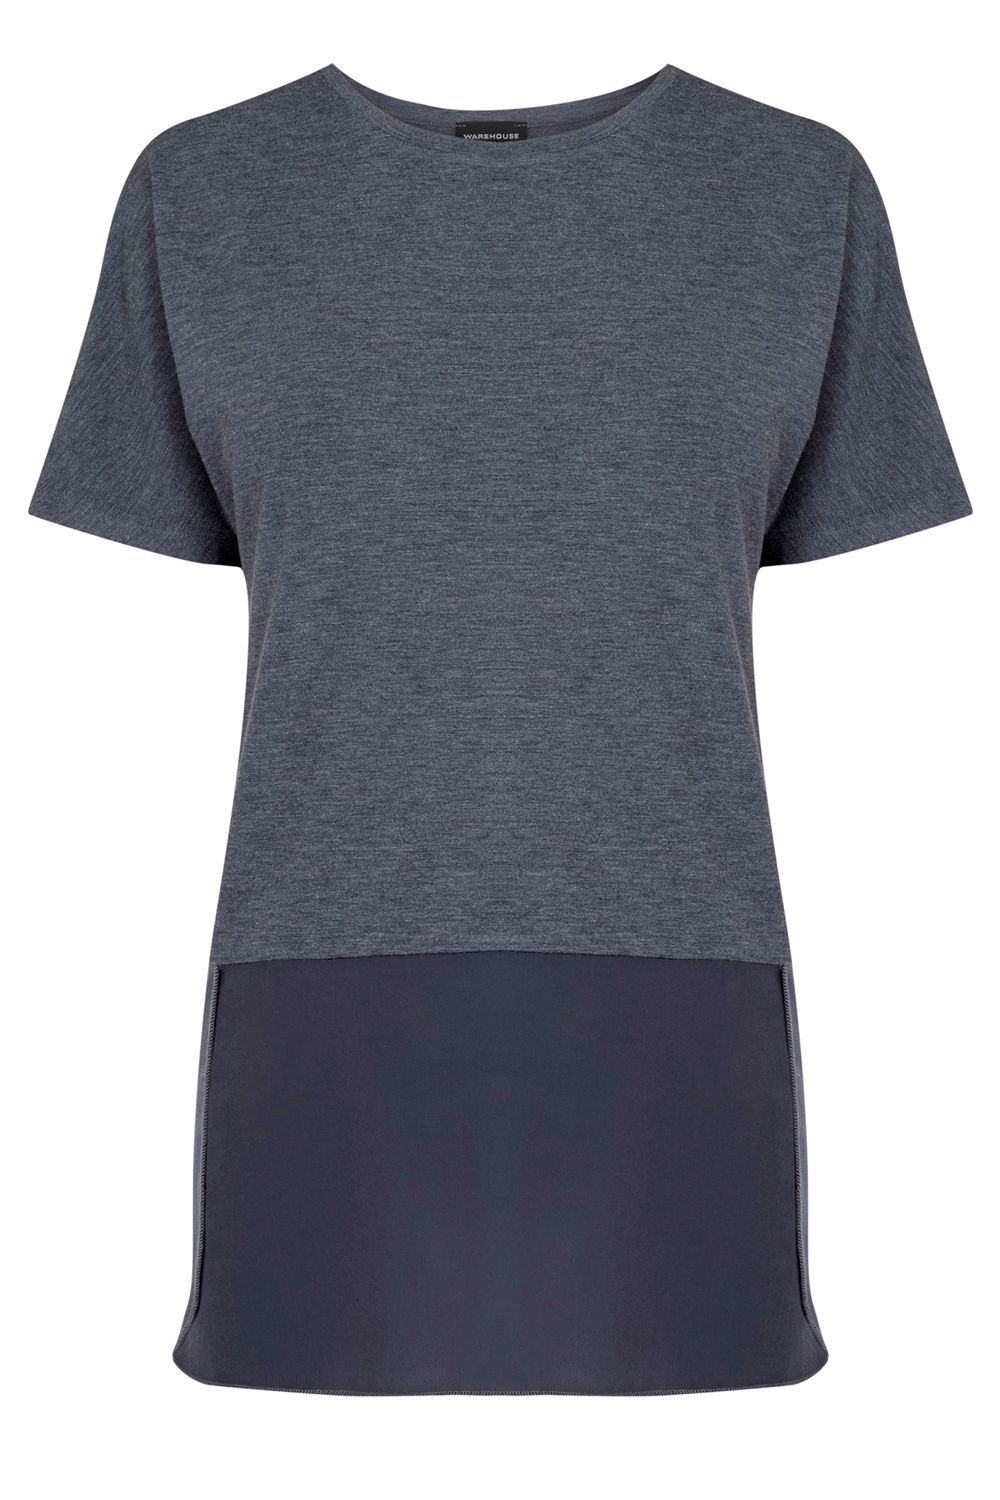 Woven Mix Short Sleeved Top, Light Blue - predominant colour: navy; occasions: casual; length: standard; style: top; fibres: polyester/polyamide - 100%; fit: body skimming; neckline: crew; sleeve length: short sleeve; sleeve style: standard; texture group: jersey - clingy; pattern type: fabric; pattern size: standard; pattern: colourblock; season: s/s 2016; wardrobe: highlight